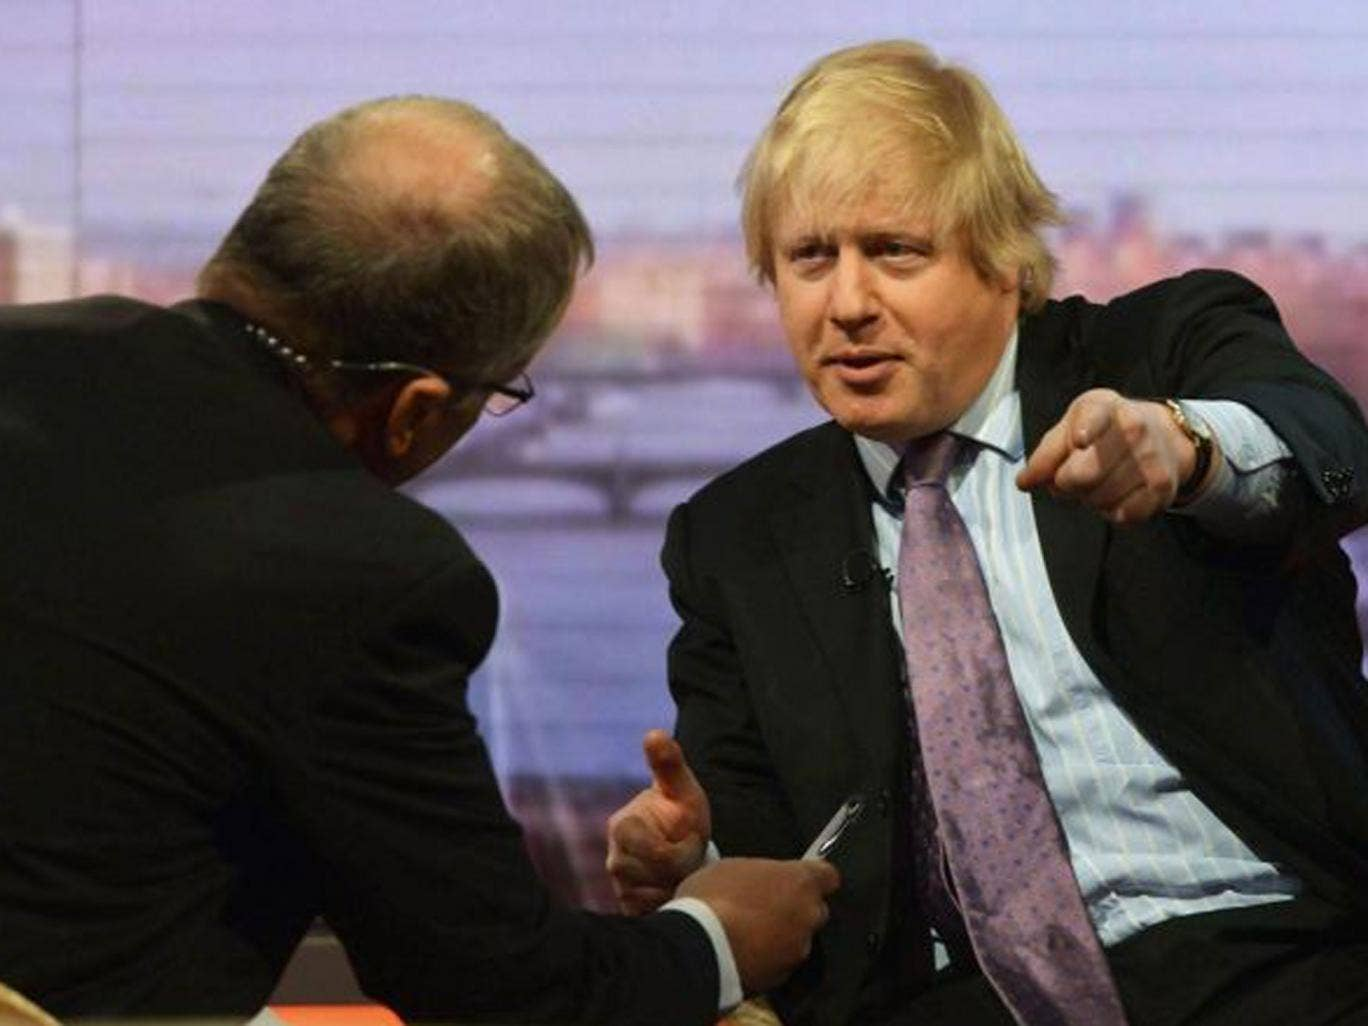 Boris Johnson (right) has lauded Eddie Mair (left) for the tough TV grilling he gave him on Sunday